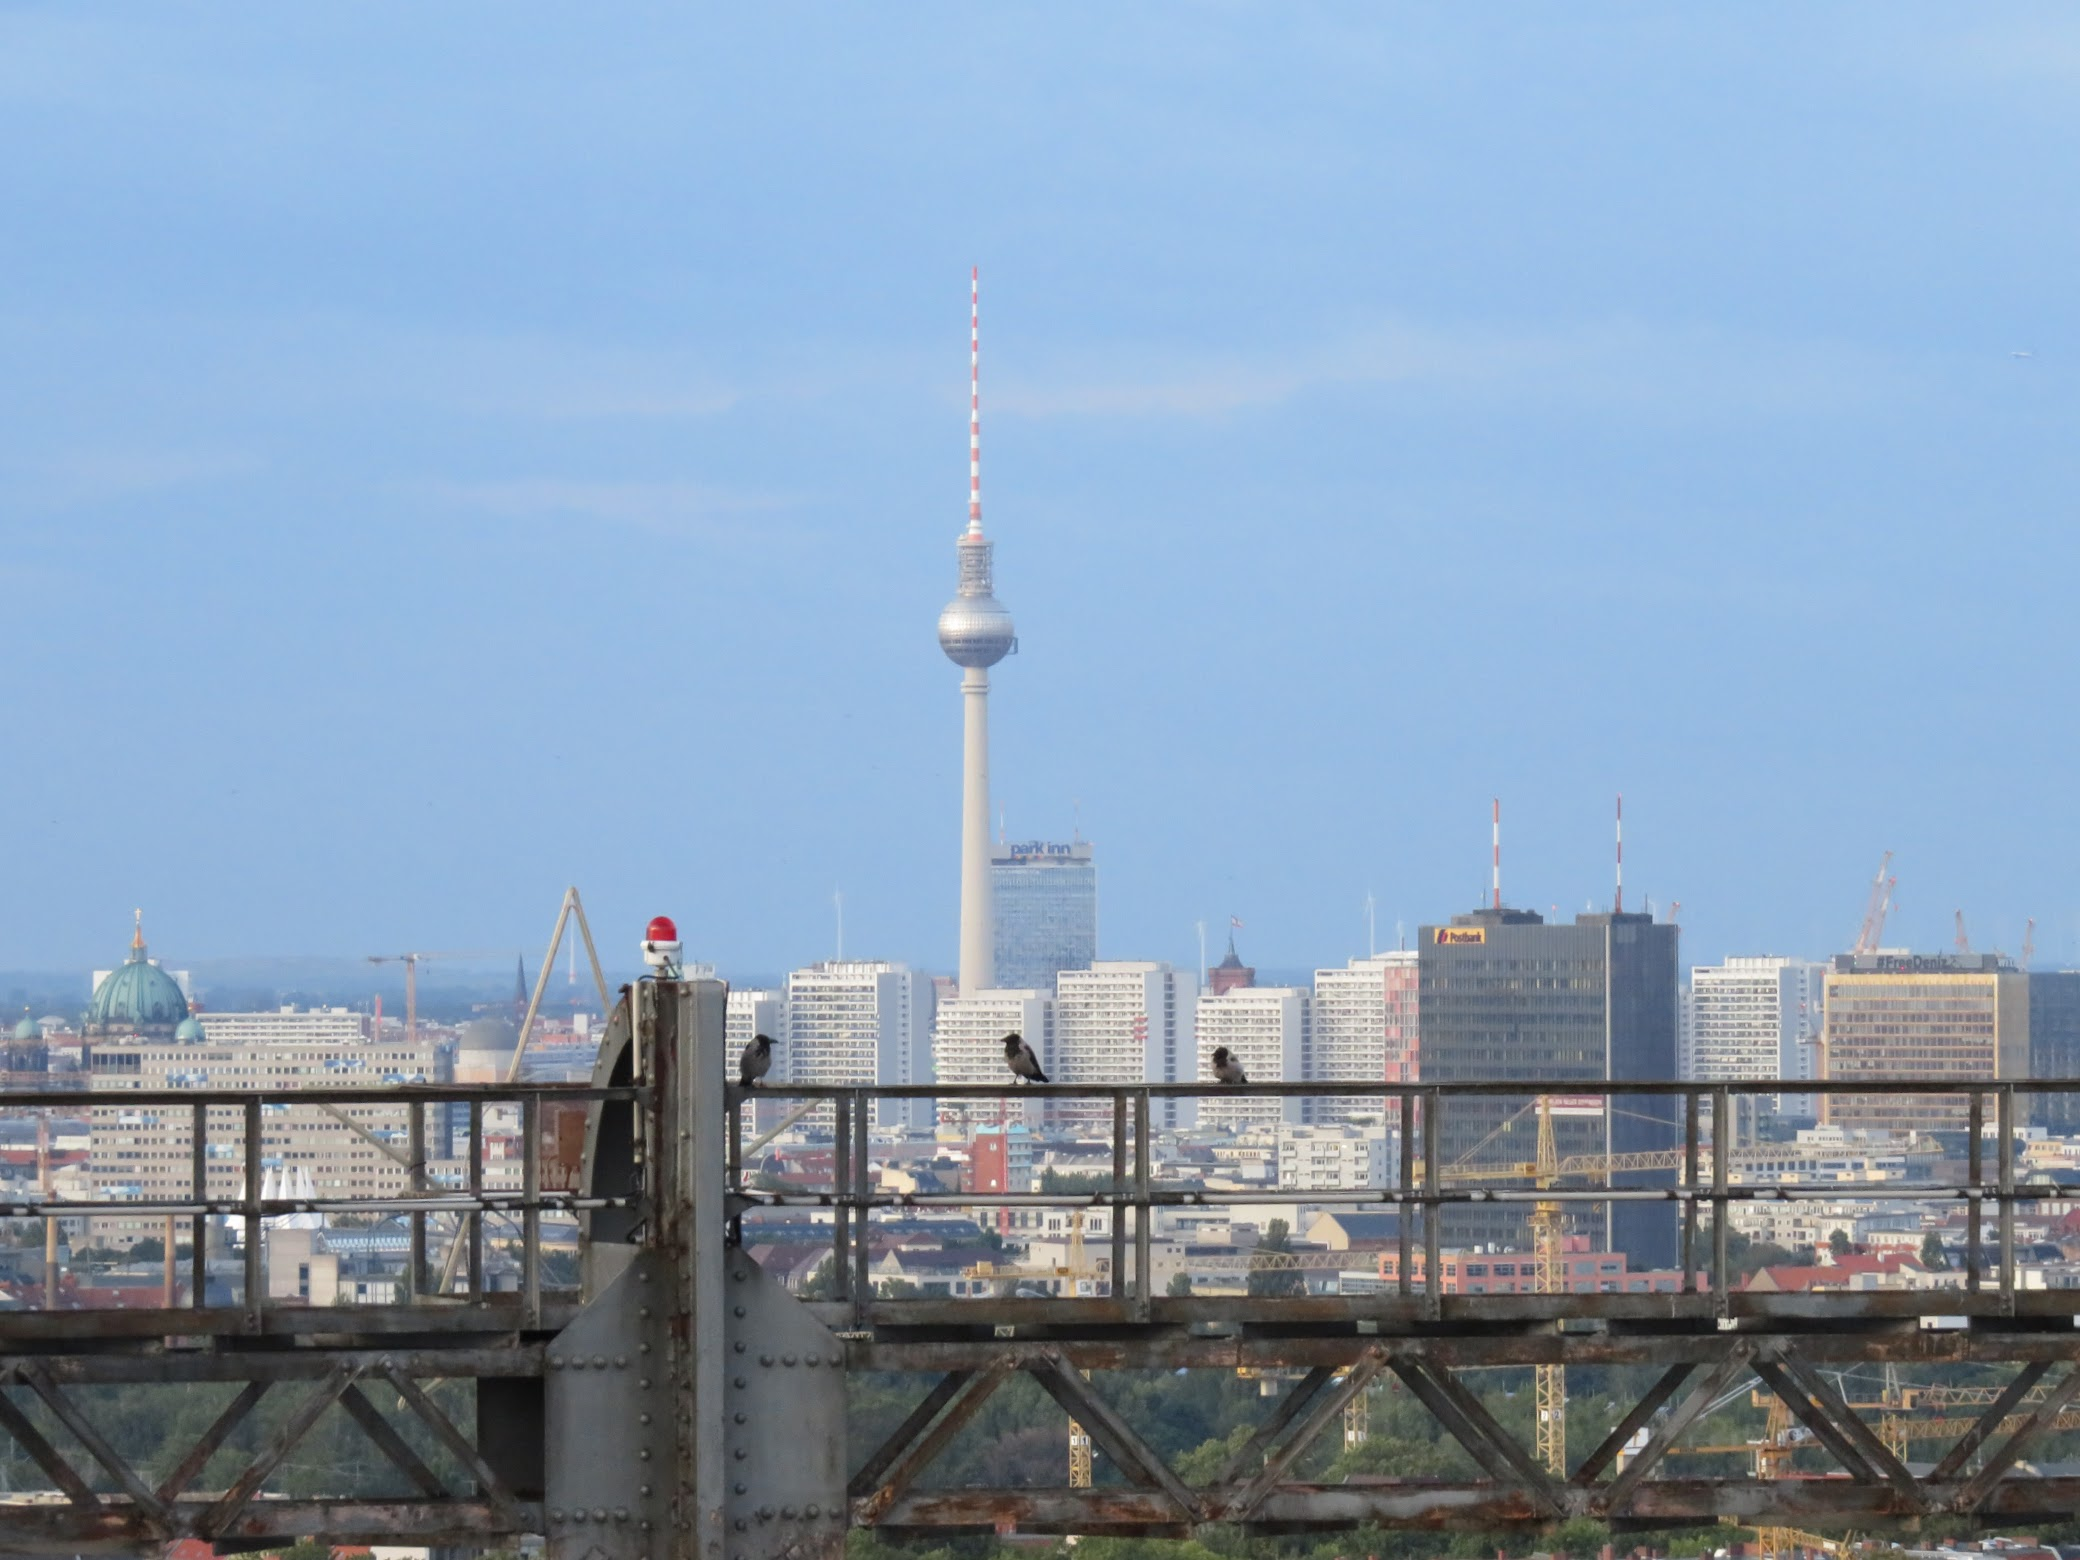 The view to the northeast, with the Berliner Dom and Fernsehturm in the distance.